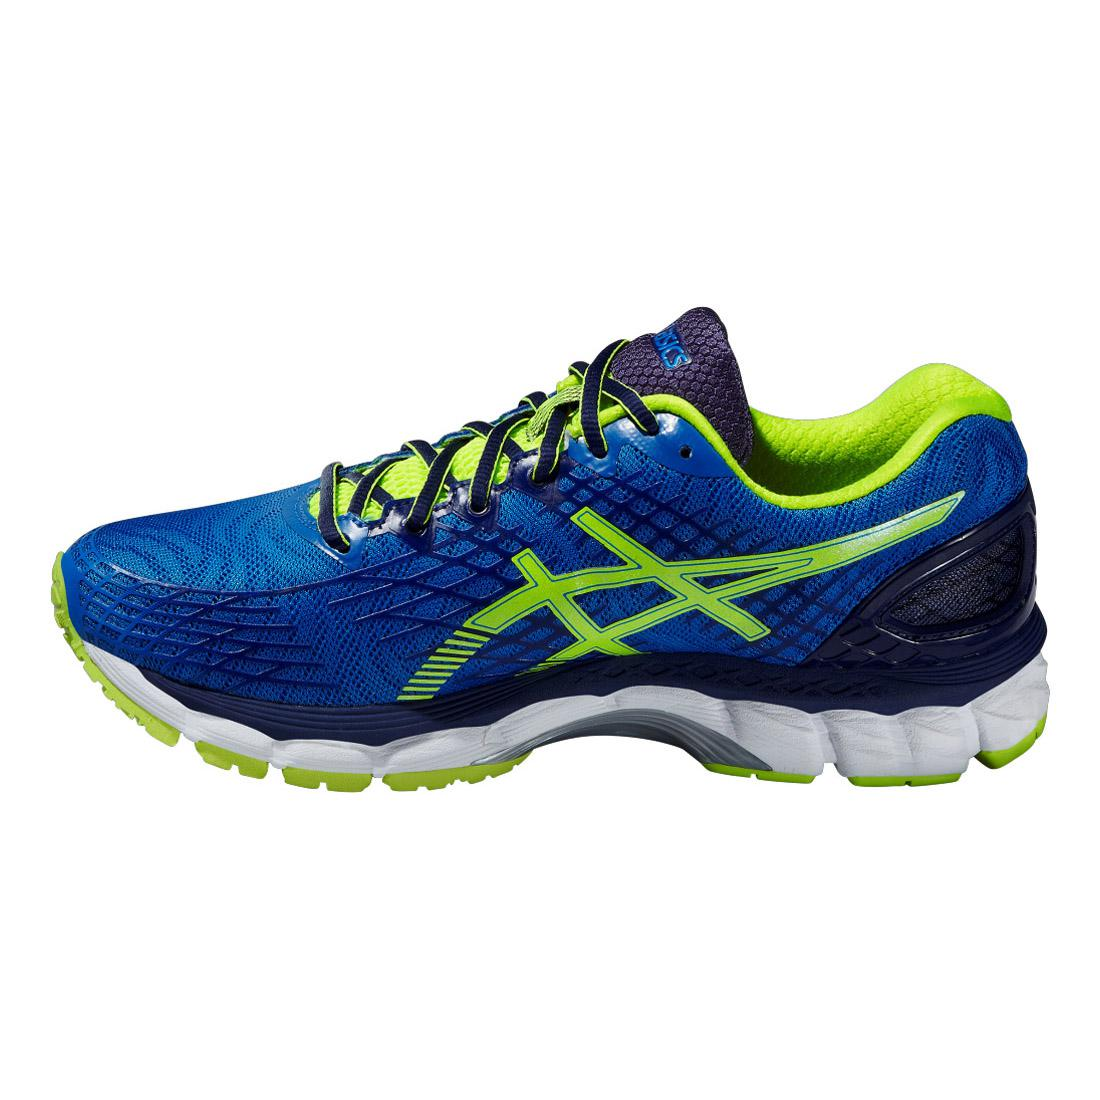 Asics Mens GEL Nimbus 17 Running Shoes - Electric Blue Flash Yellow ... 941f4de95b